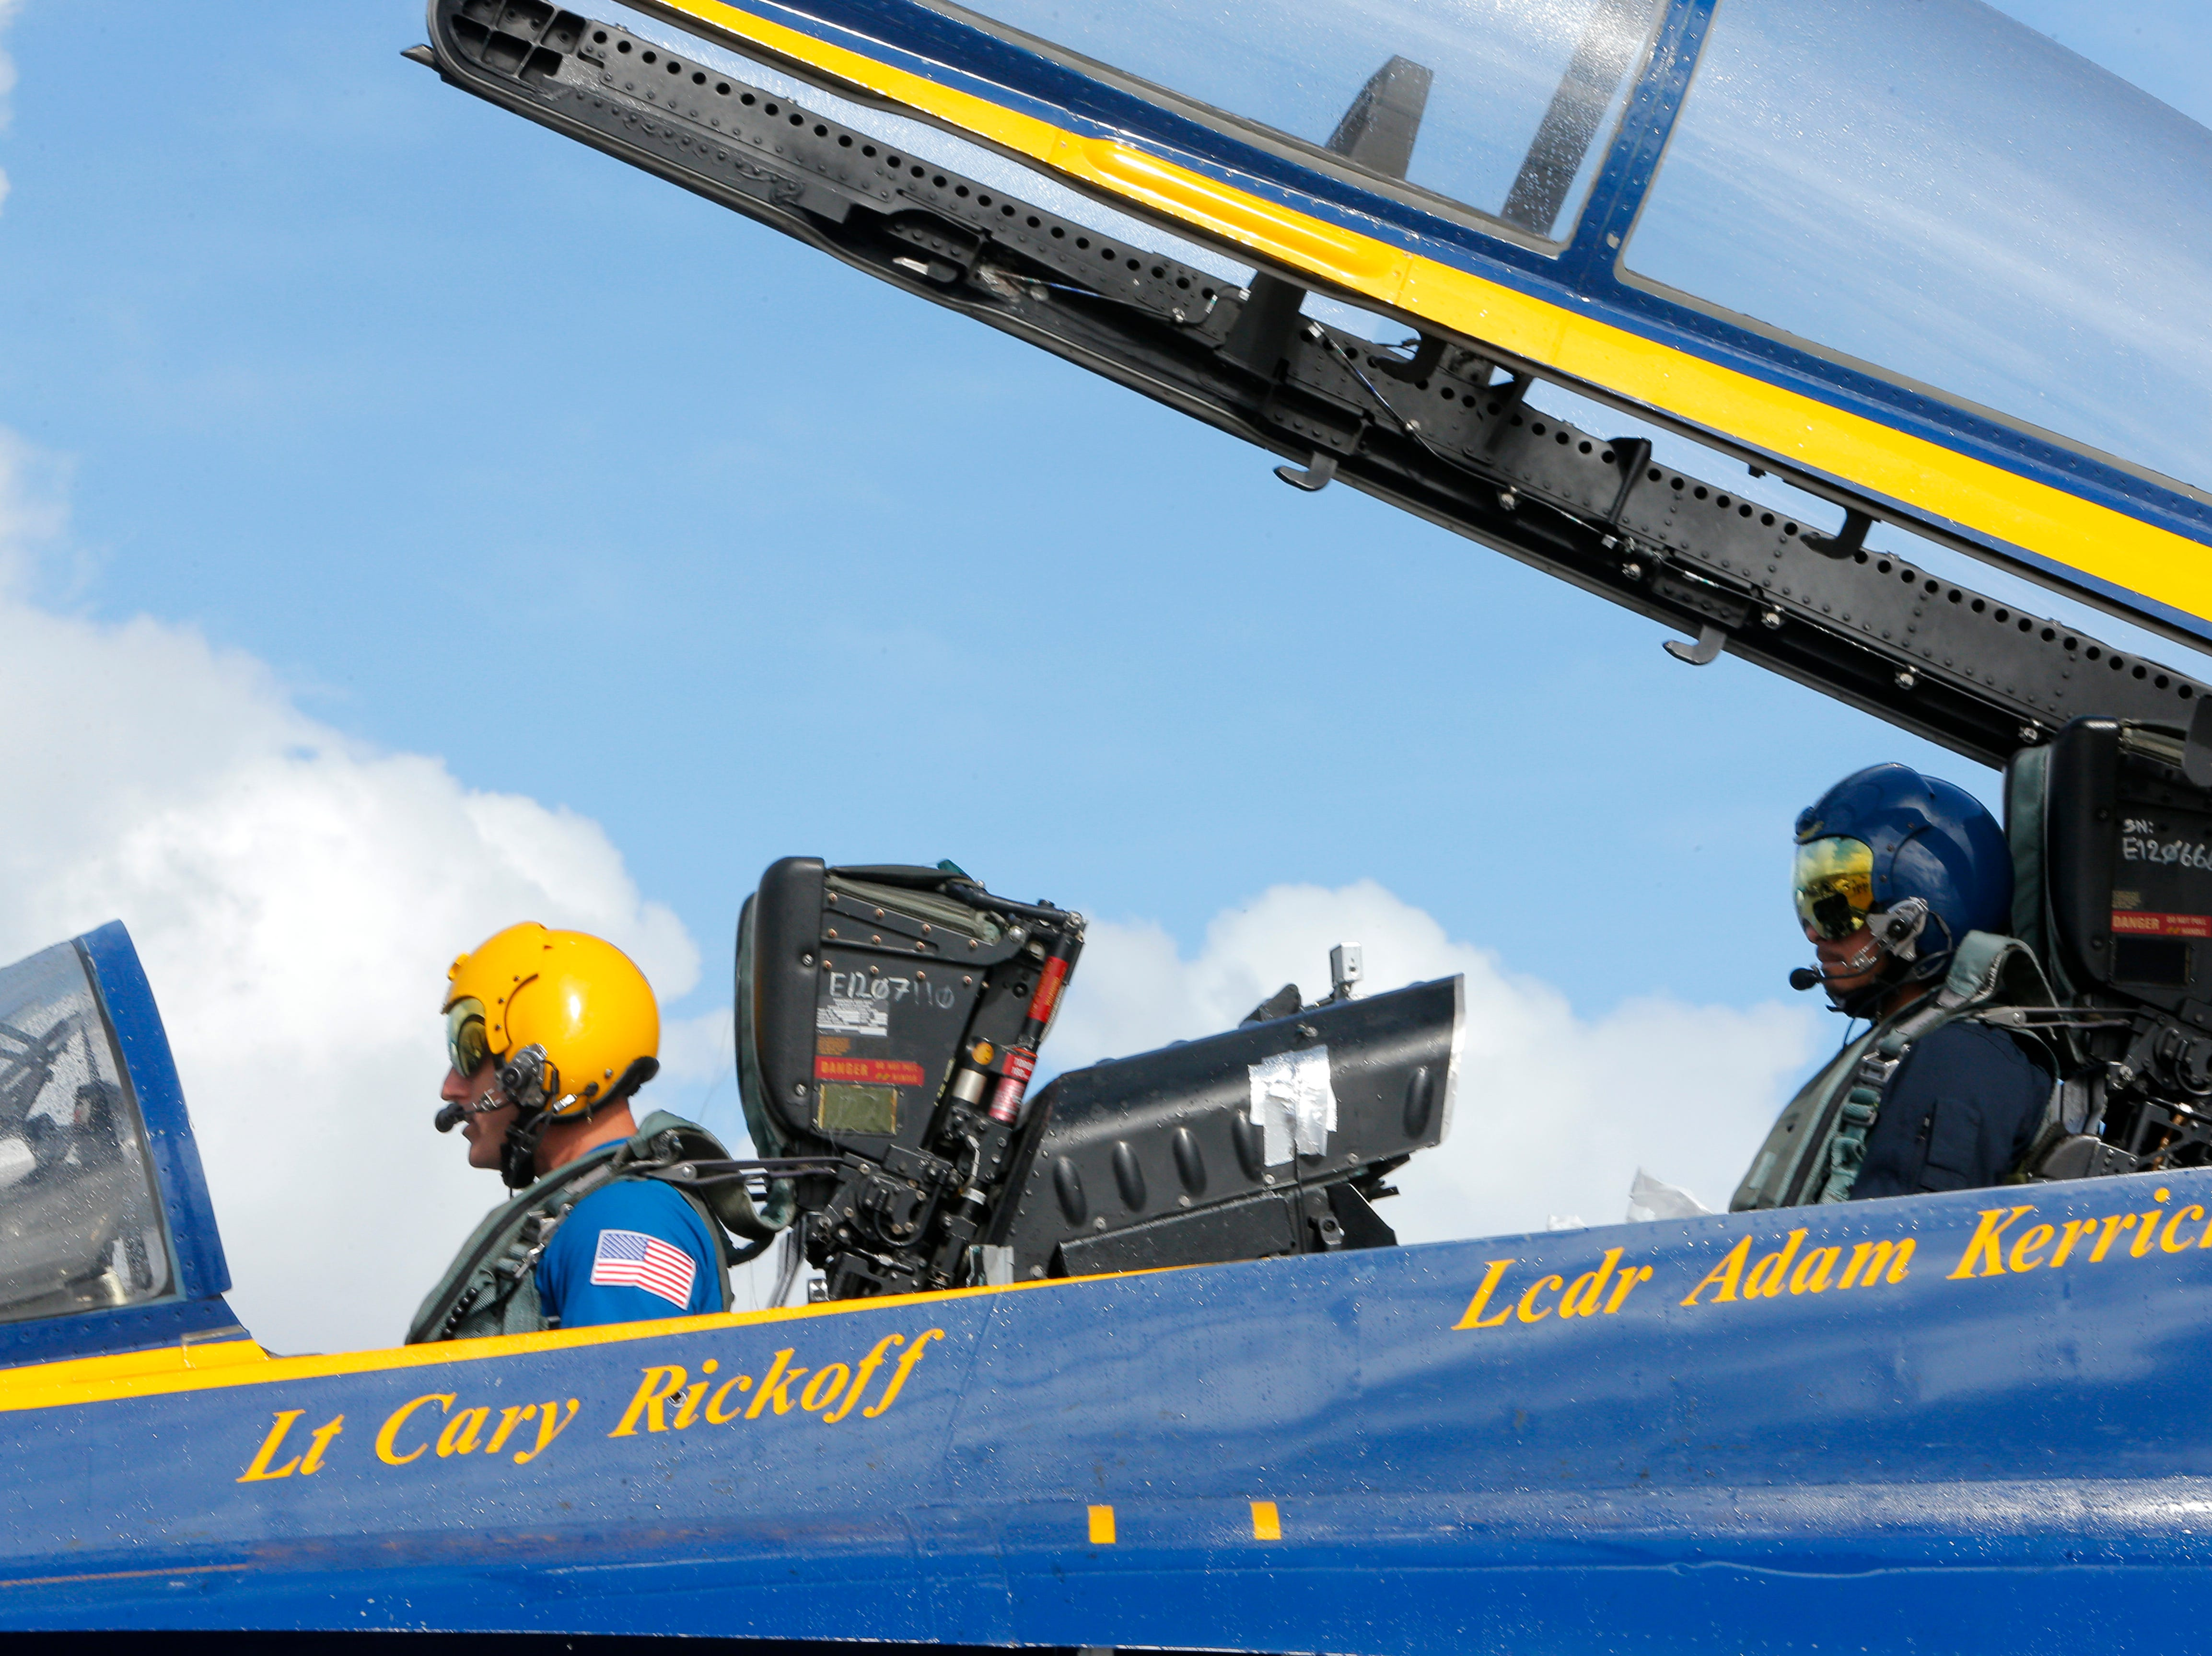 Salinas police officer Daniel Garcia was selected to ride in a flight with the Blue Angels March 20, 2019, in anticipation of the California International Airshow Salinas.